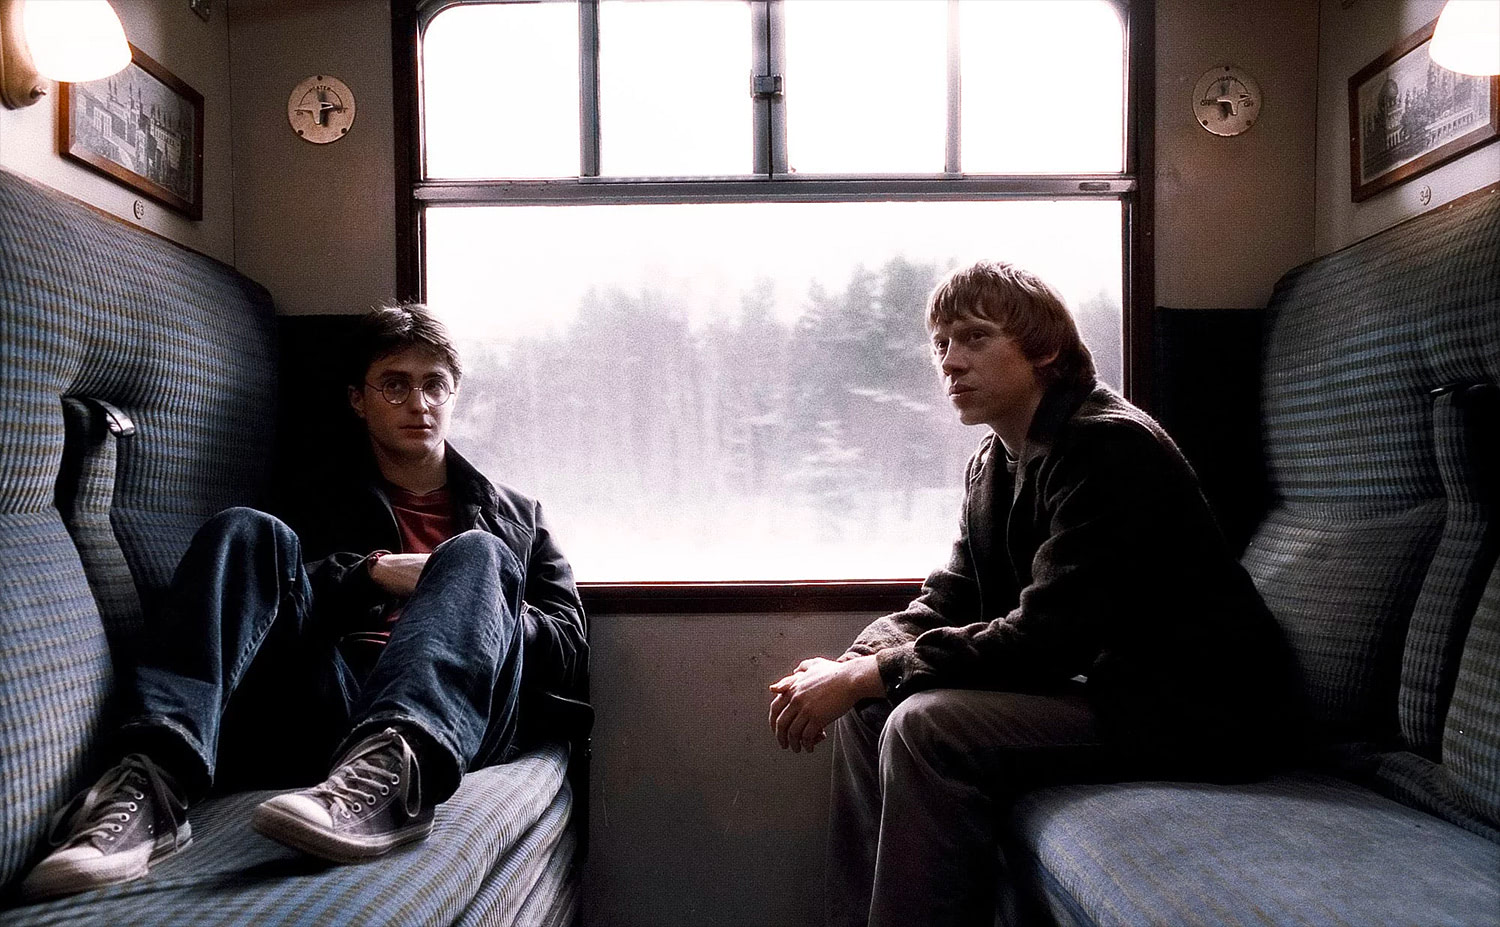 Harry and Ron on the Hogwarts Express